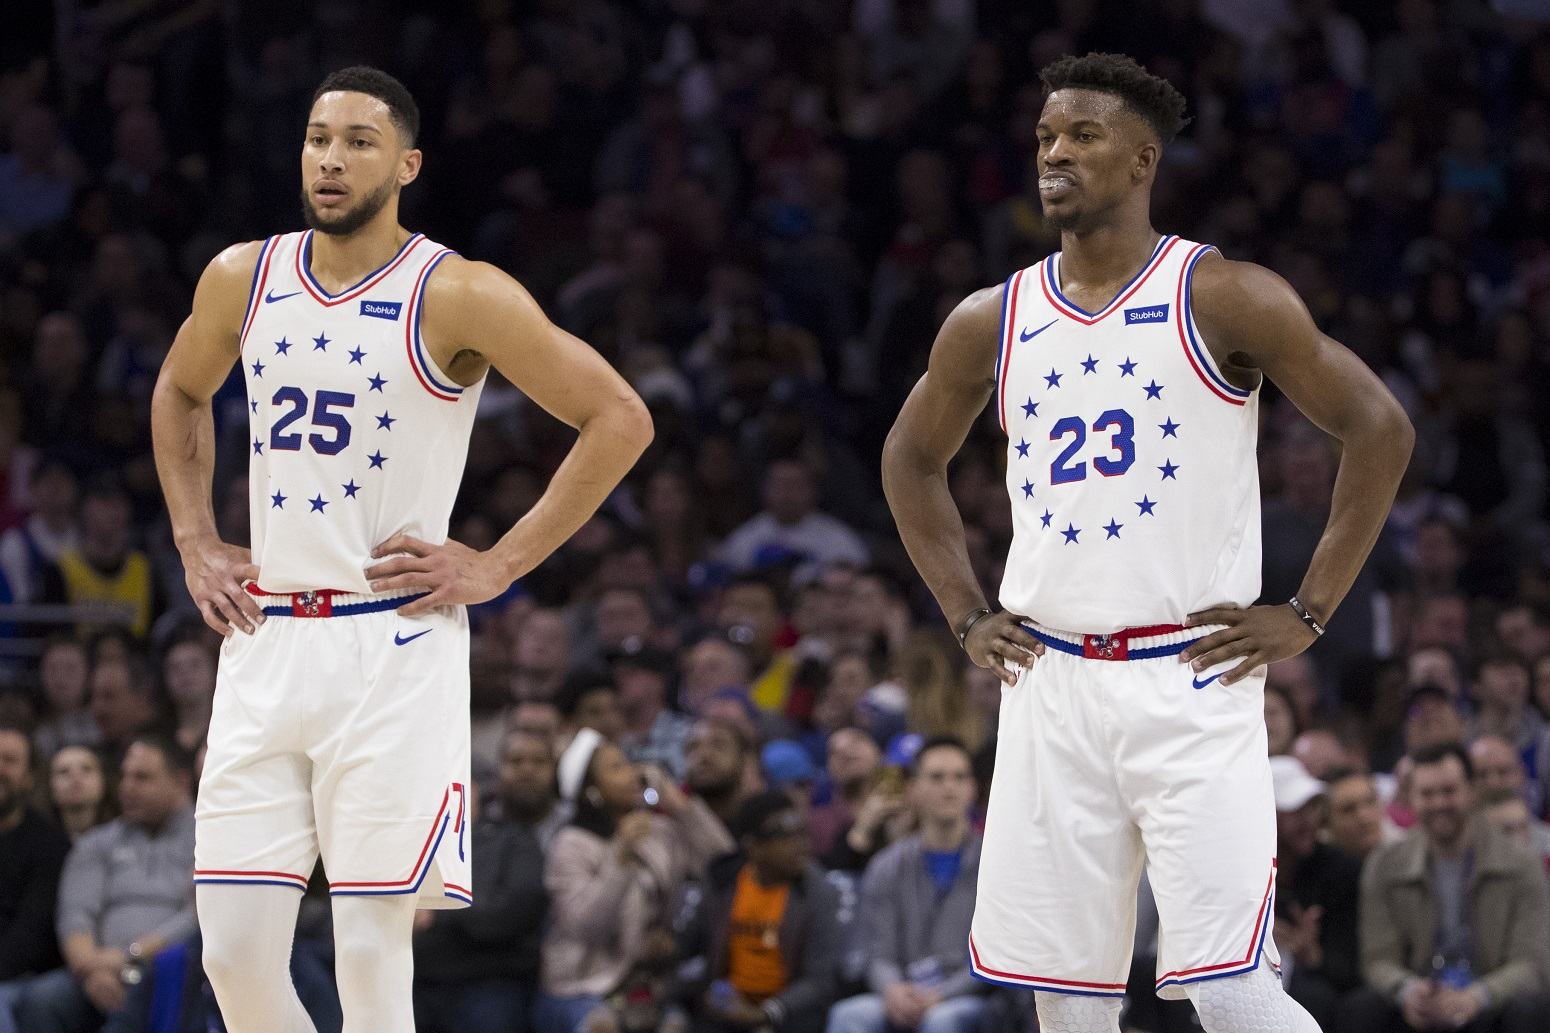 Jimmy Butler Ben Simmons 76ers not impressed